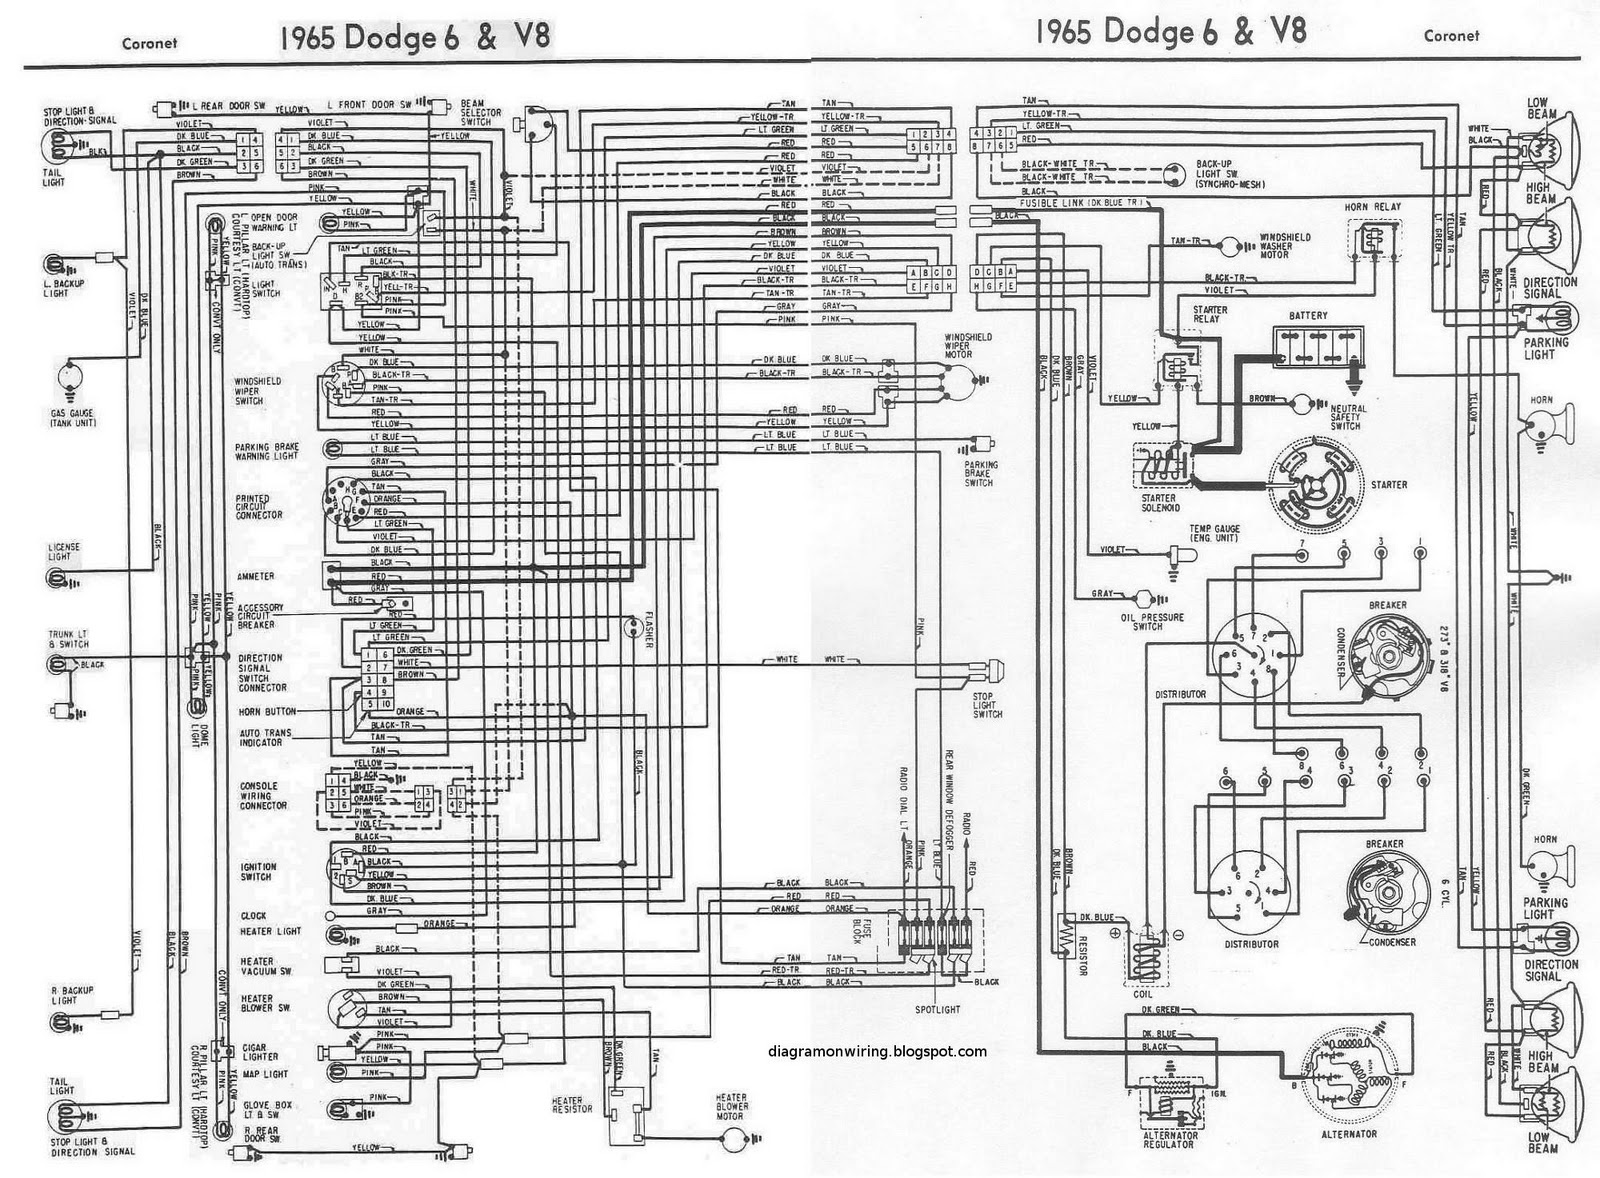 1965 dodge dart fuse box wiring diagram dash 1975 dodge truck wiring diagram dodge dart wiring diagrams #6